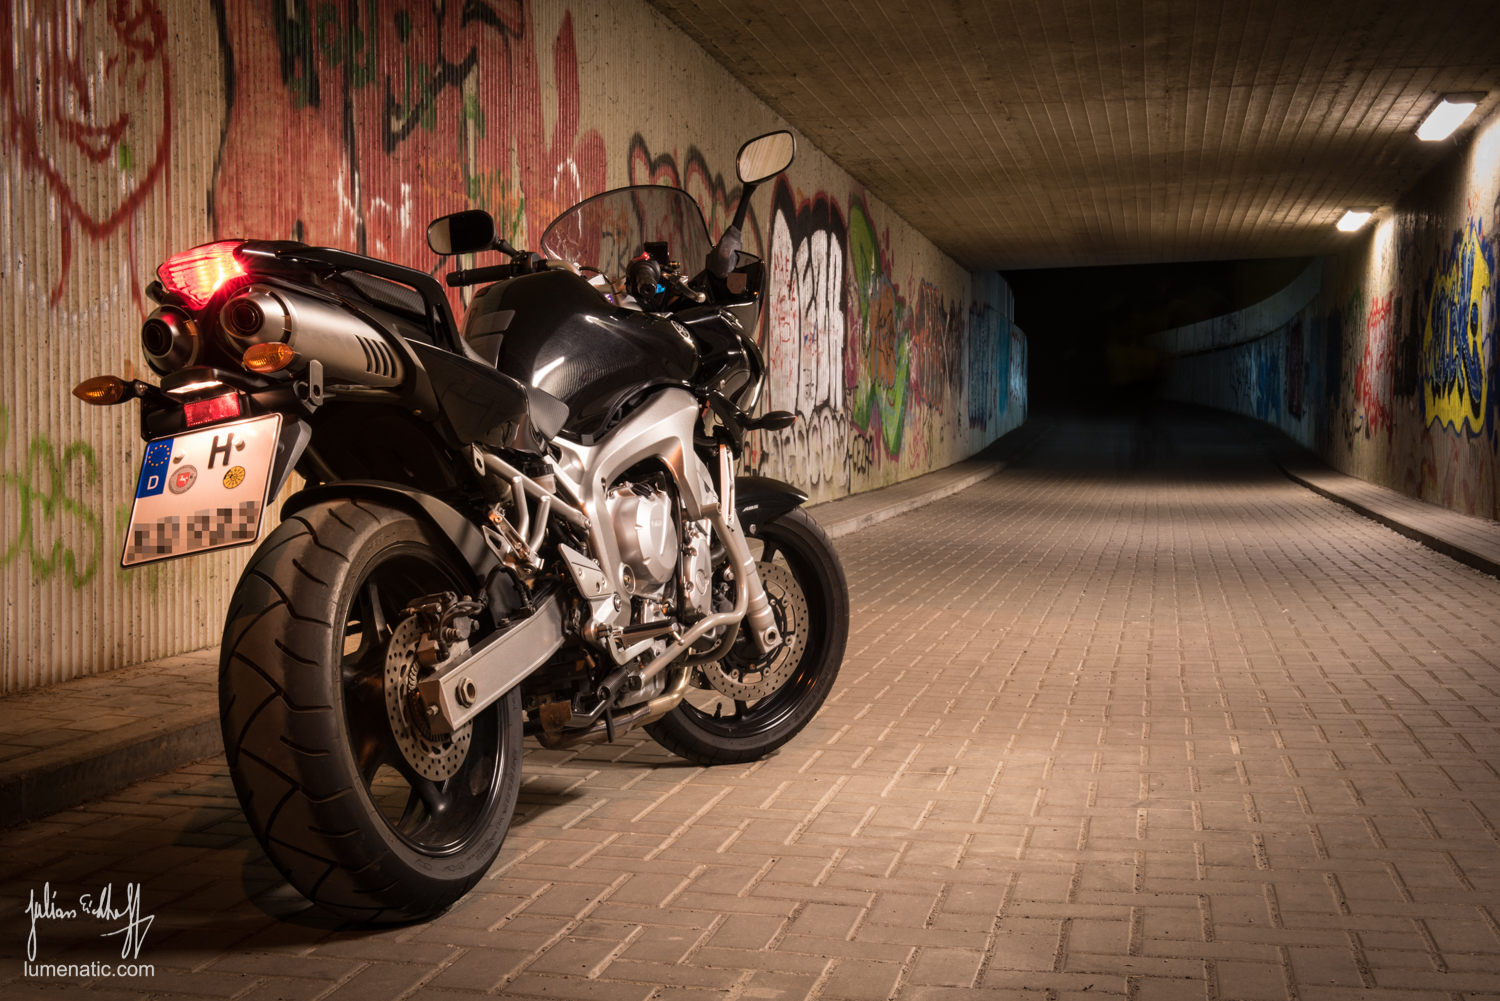 Photographing Motorbikes (Part 1/2)